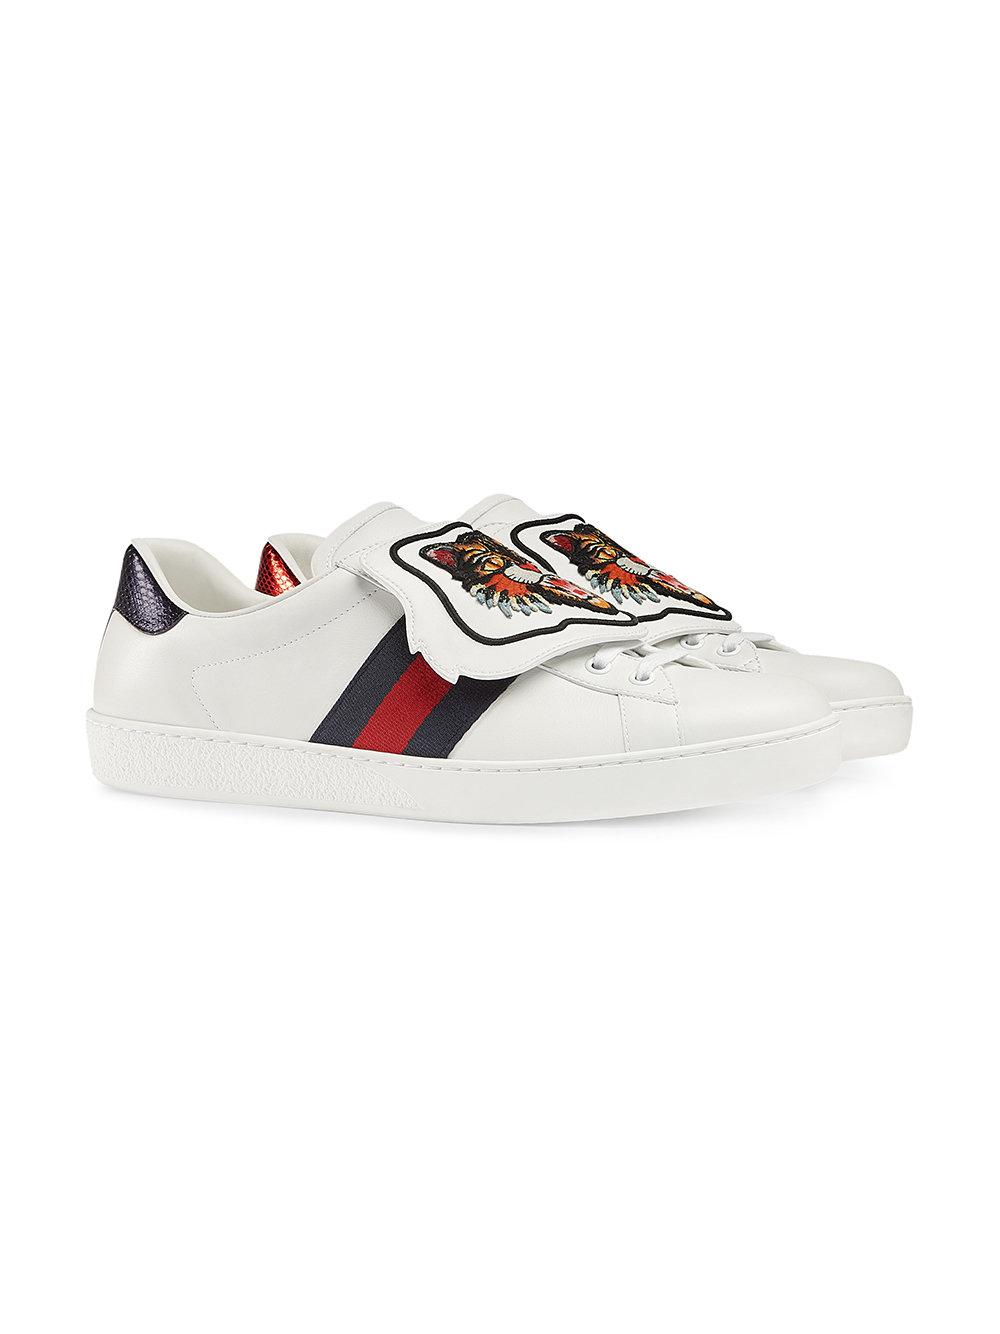 8e0ed74e6 Gucci Ace Sneaker With Removable Embroideries in White for Men - Lyst